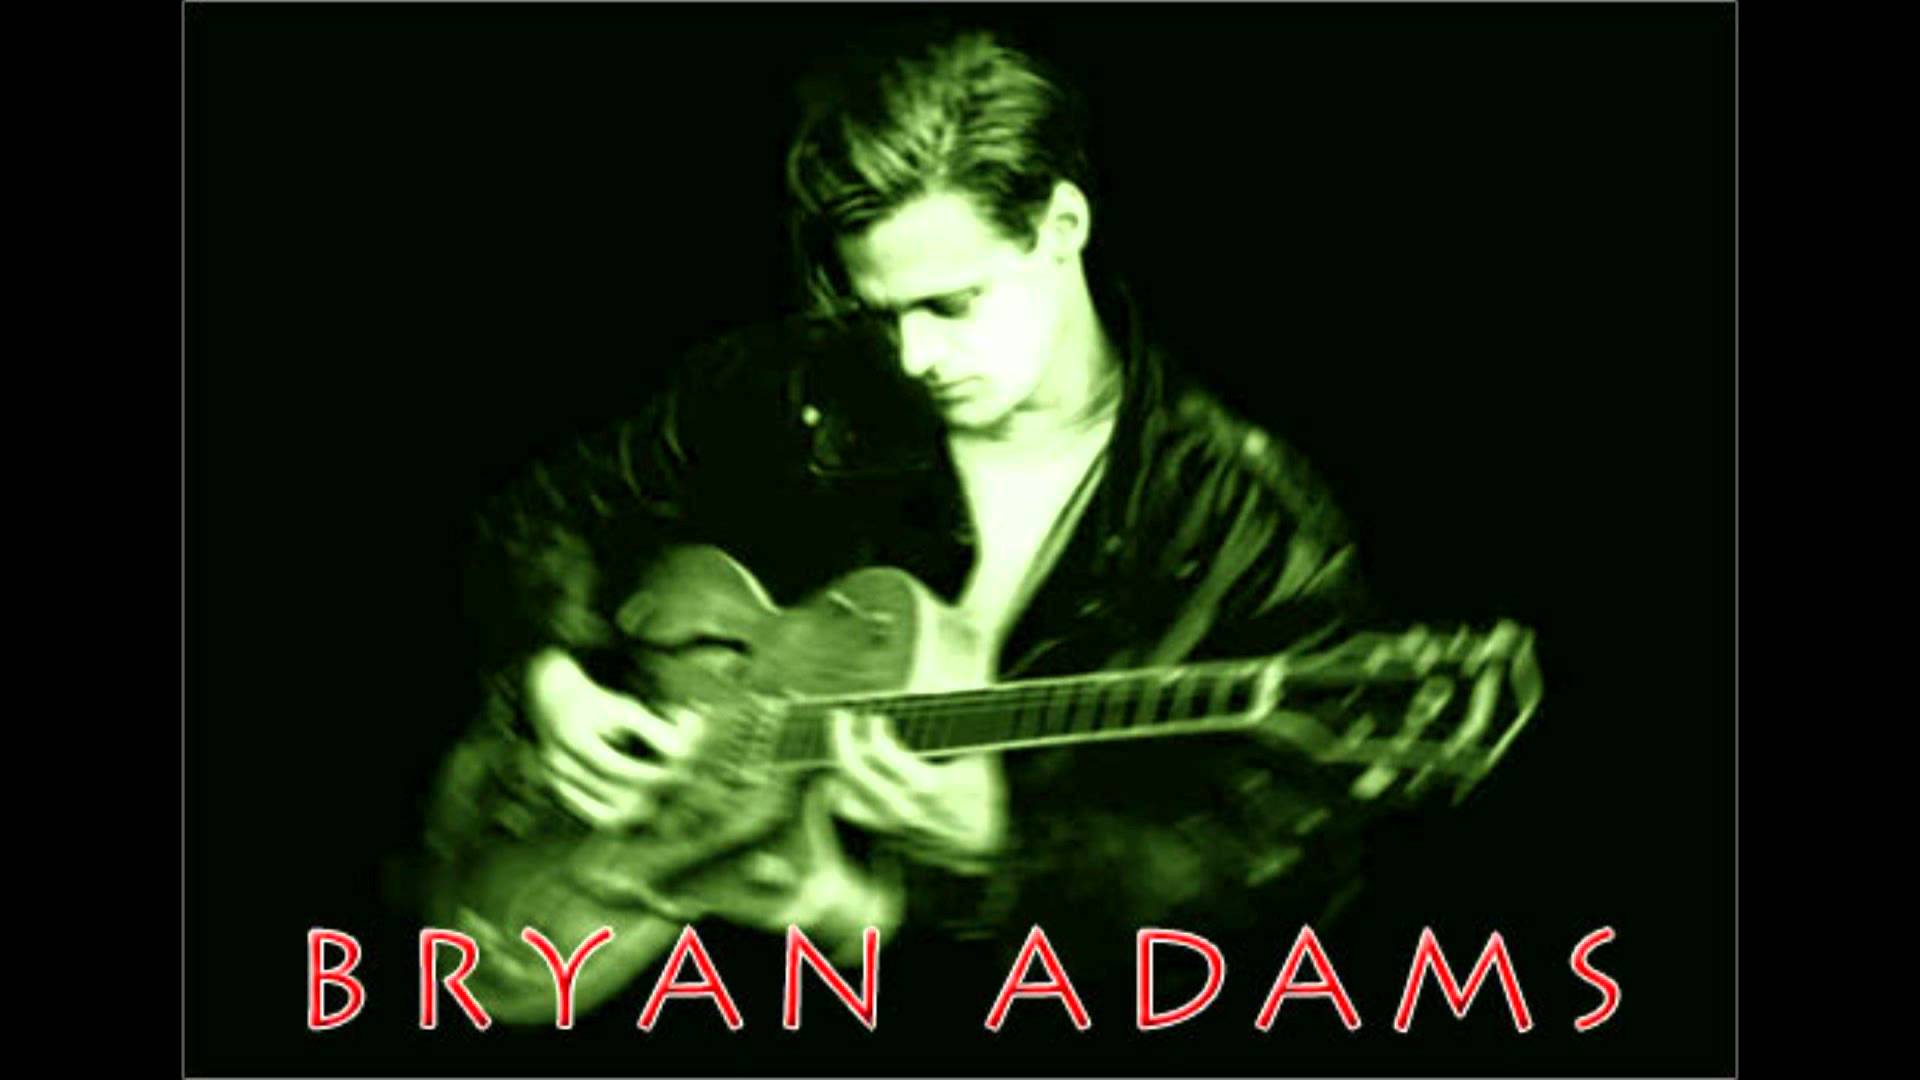 Bryan Adams Summer of 69 Backing track for Guitar Cover